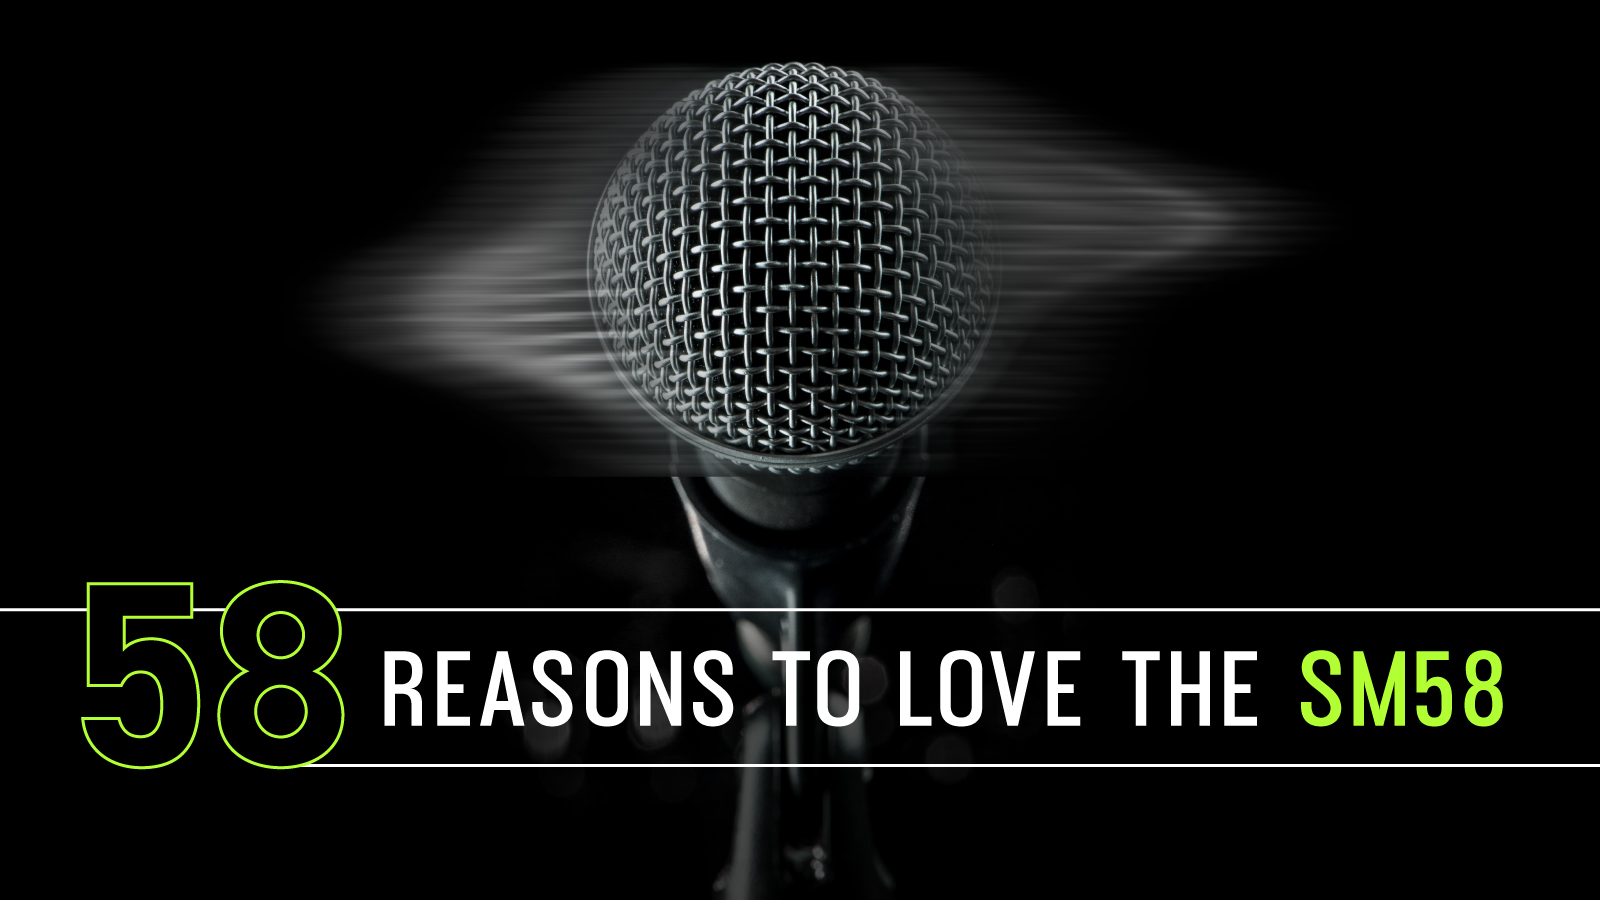 58 Reasons to Love the SM58